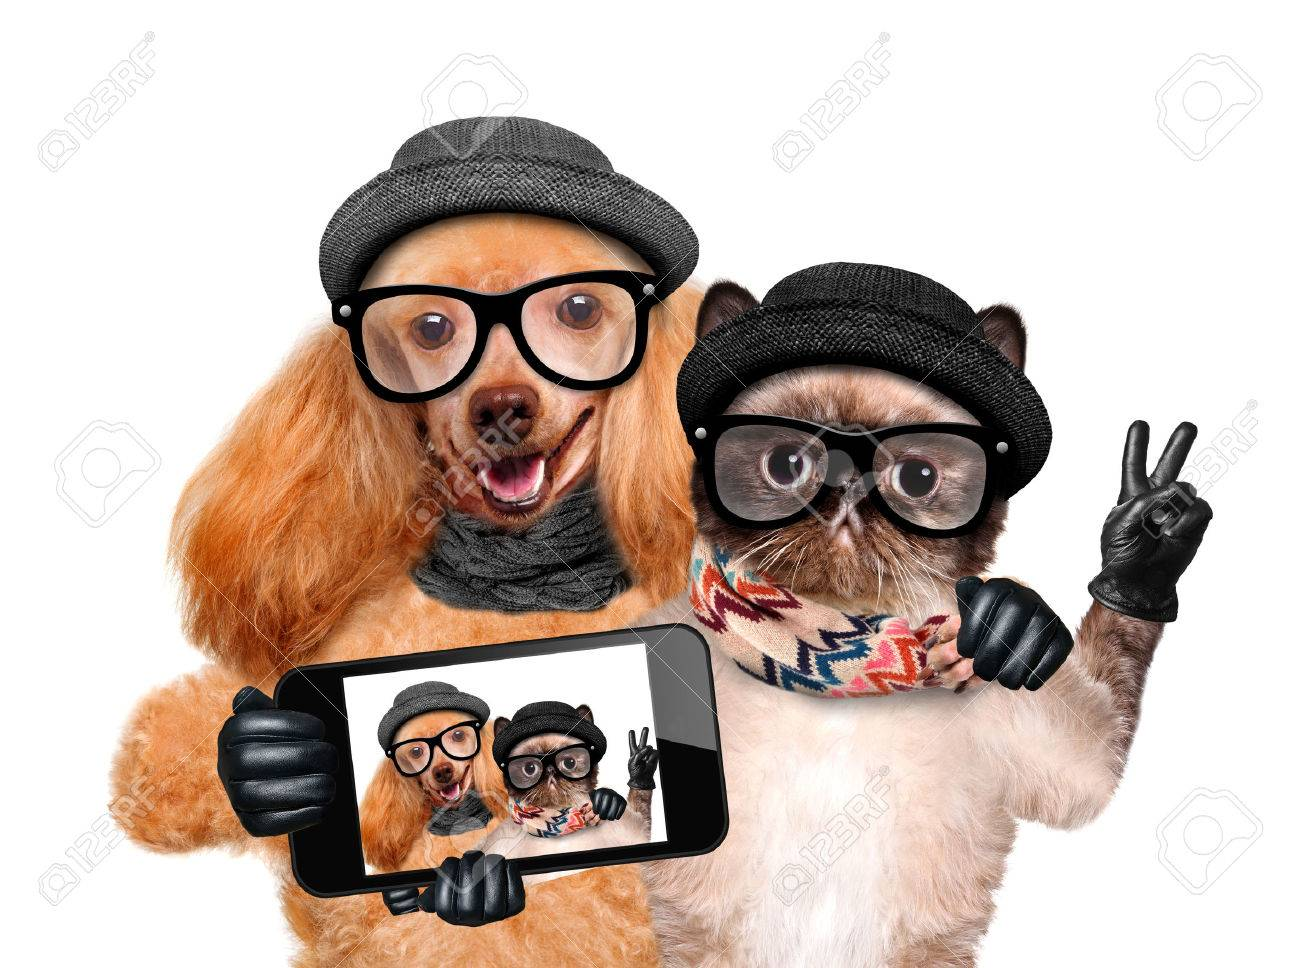 71562fe7 Dog with cat taking a selfie together with a smartphone. Stock Photo -  40636677